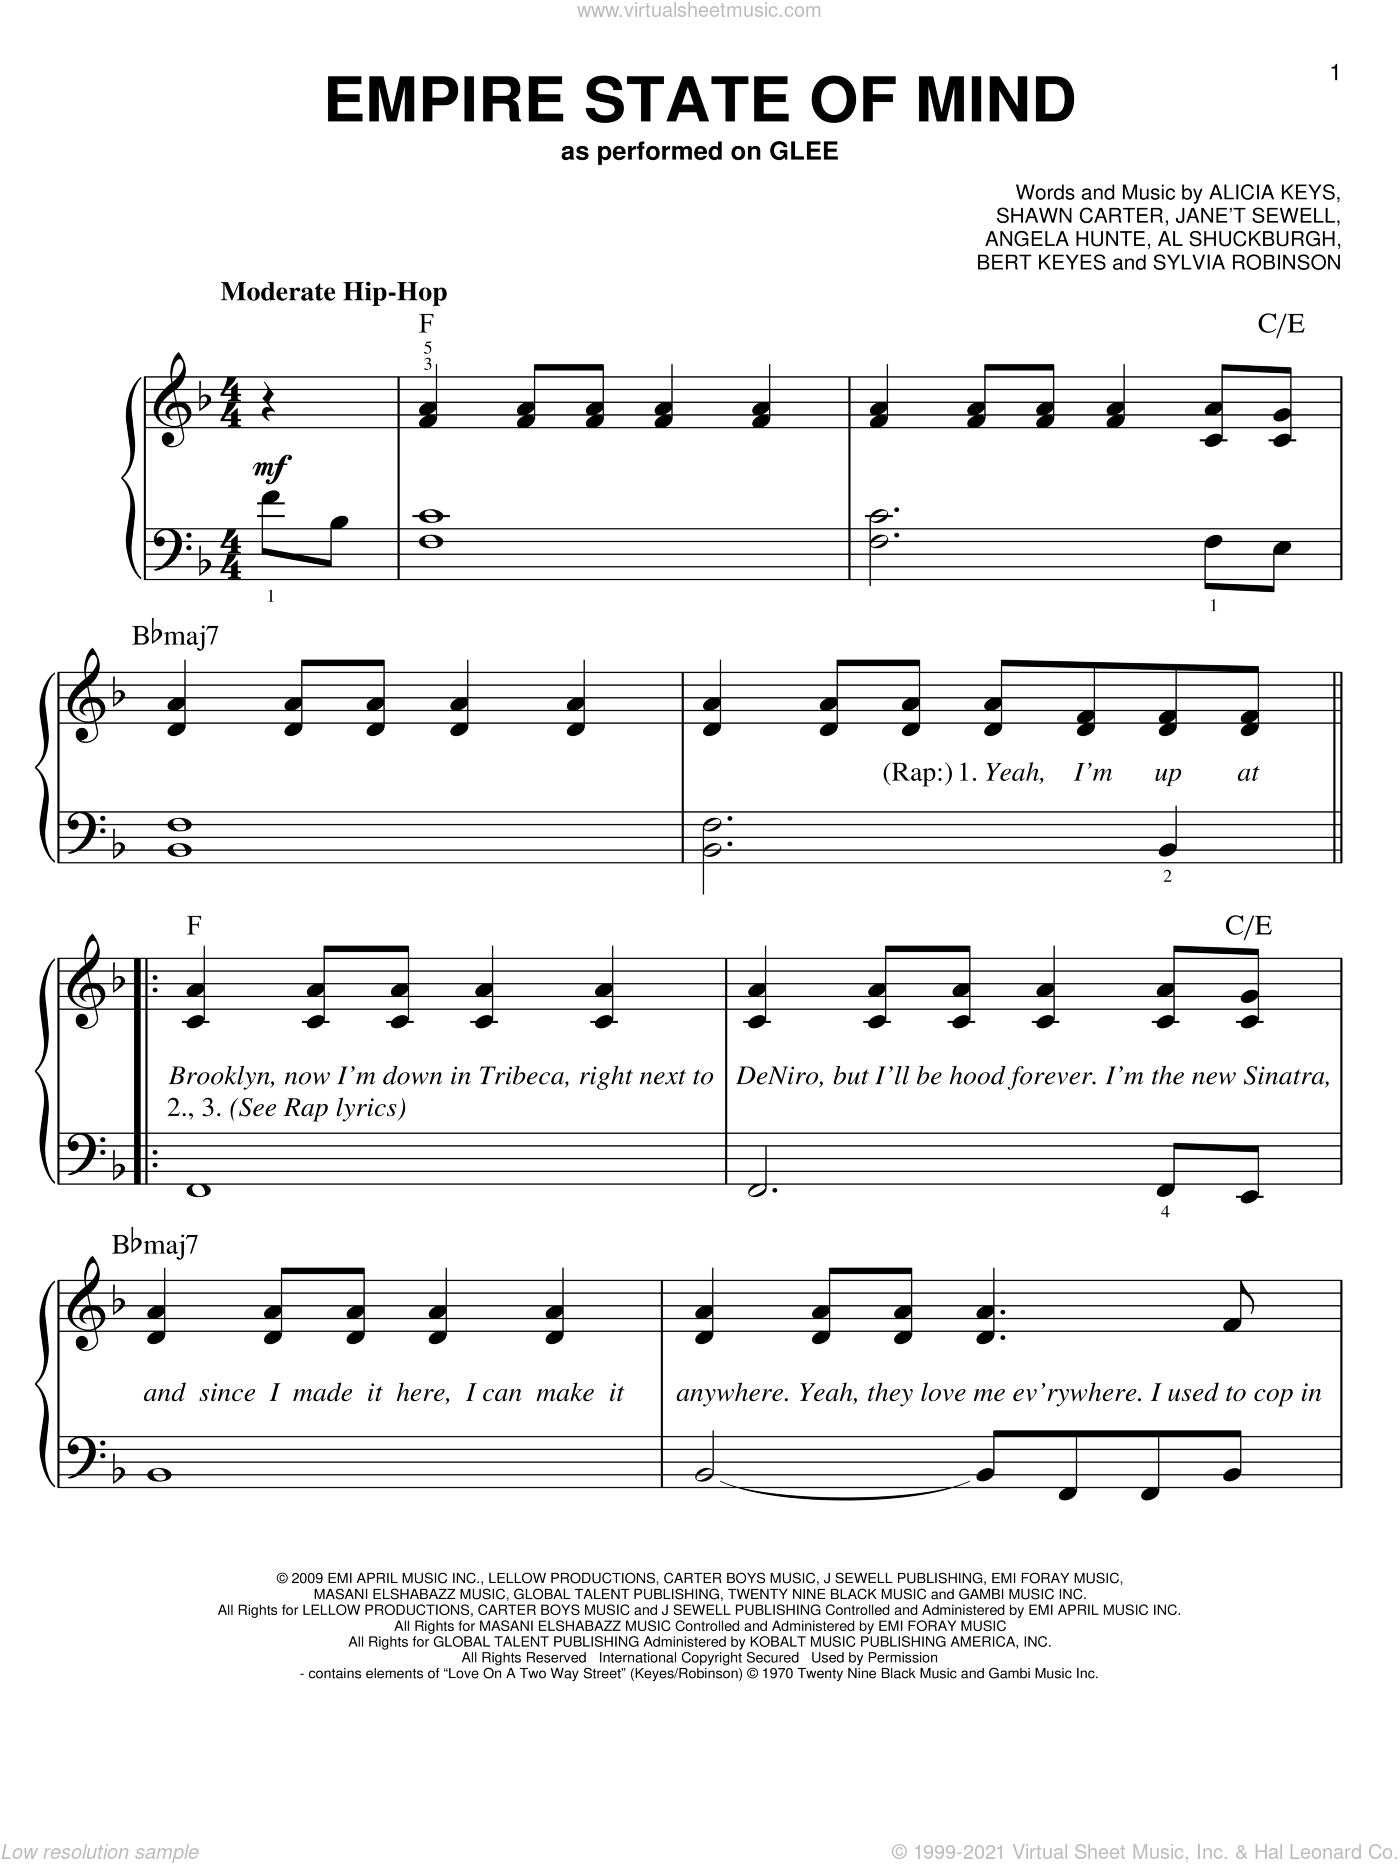 Empire State Of Mind sheet music for piano solo by Glee Cast, Jay-Z, Jay-Z featuring Alicia Keys, Miscellaneous, Al Shuckburgh, Alicia Keys, Angela Hunte, Bert Keyes, Shawn Carter and Sylvia Robinson, easy skill level